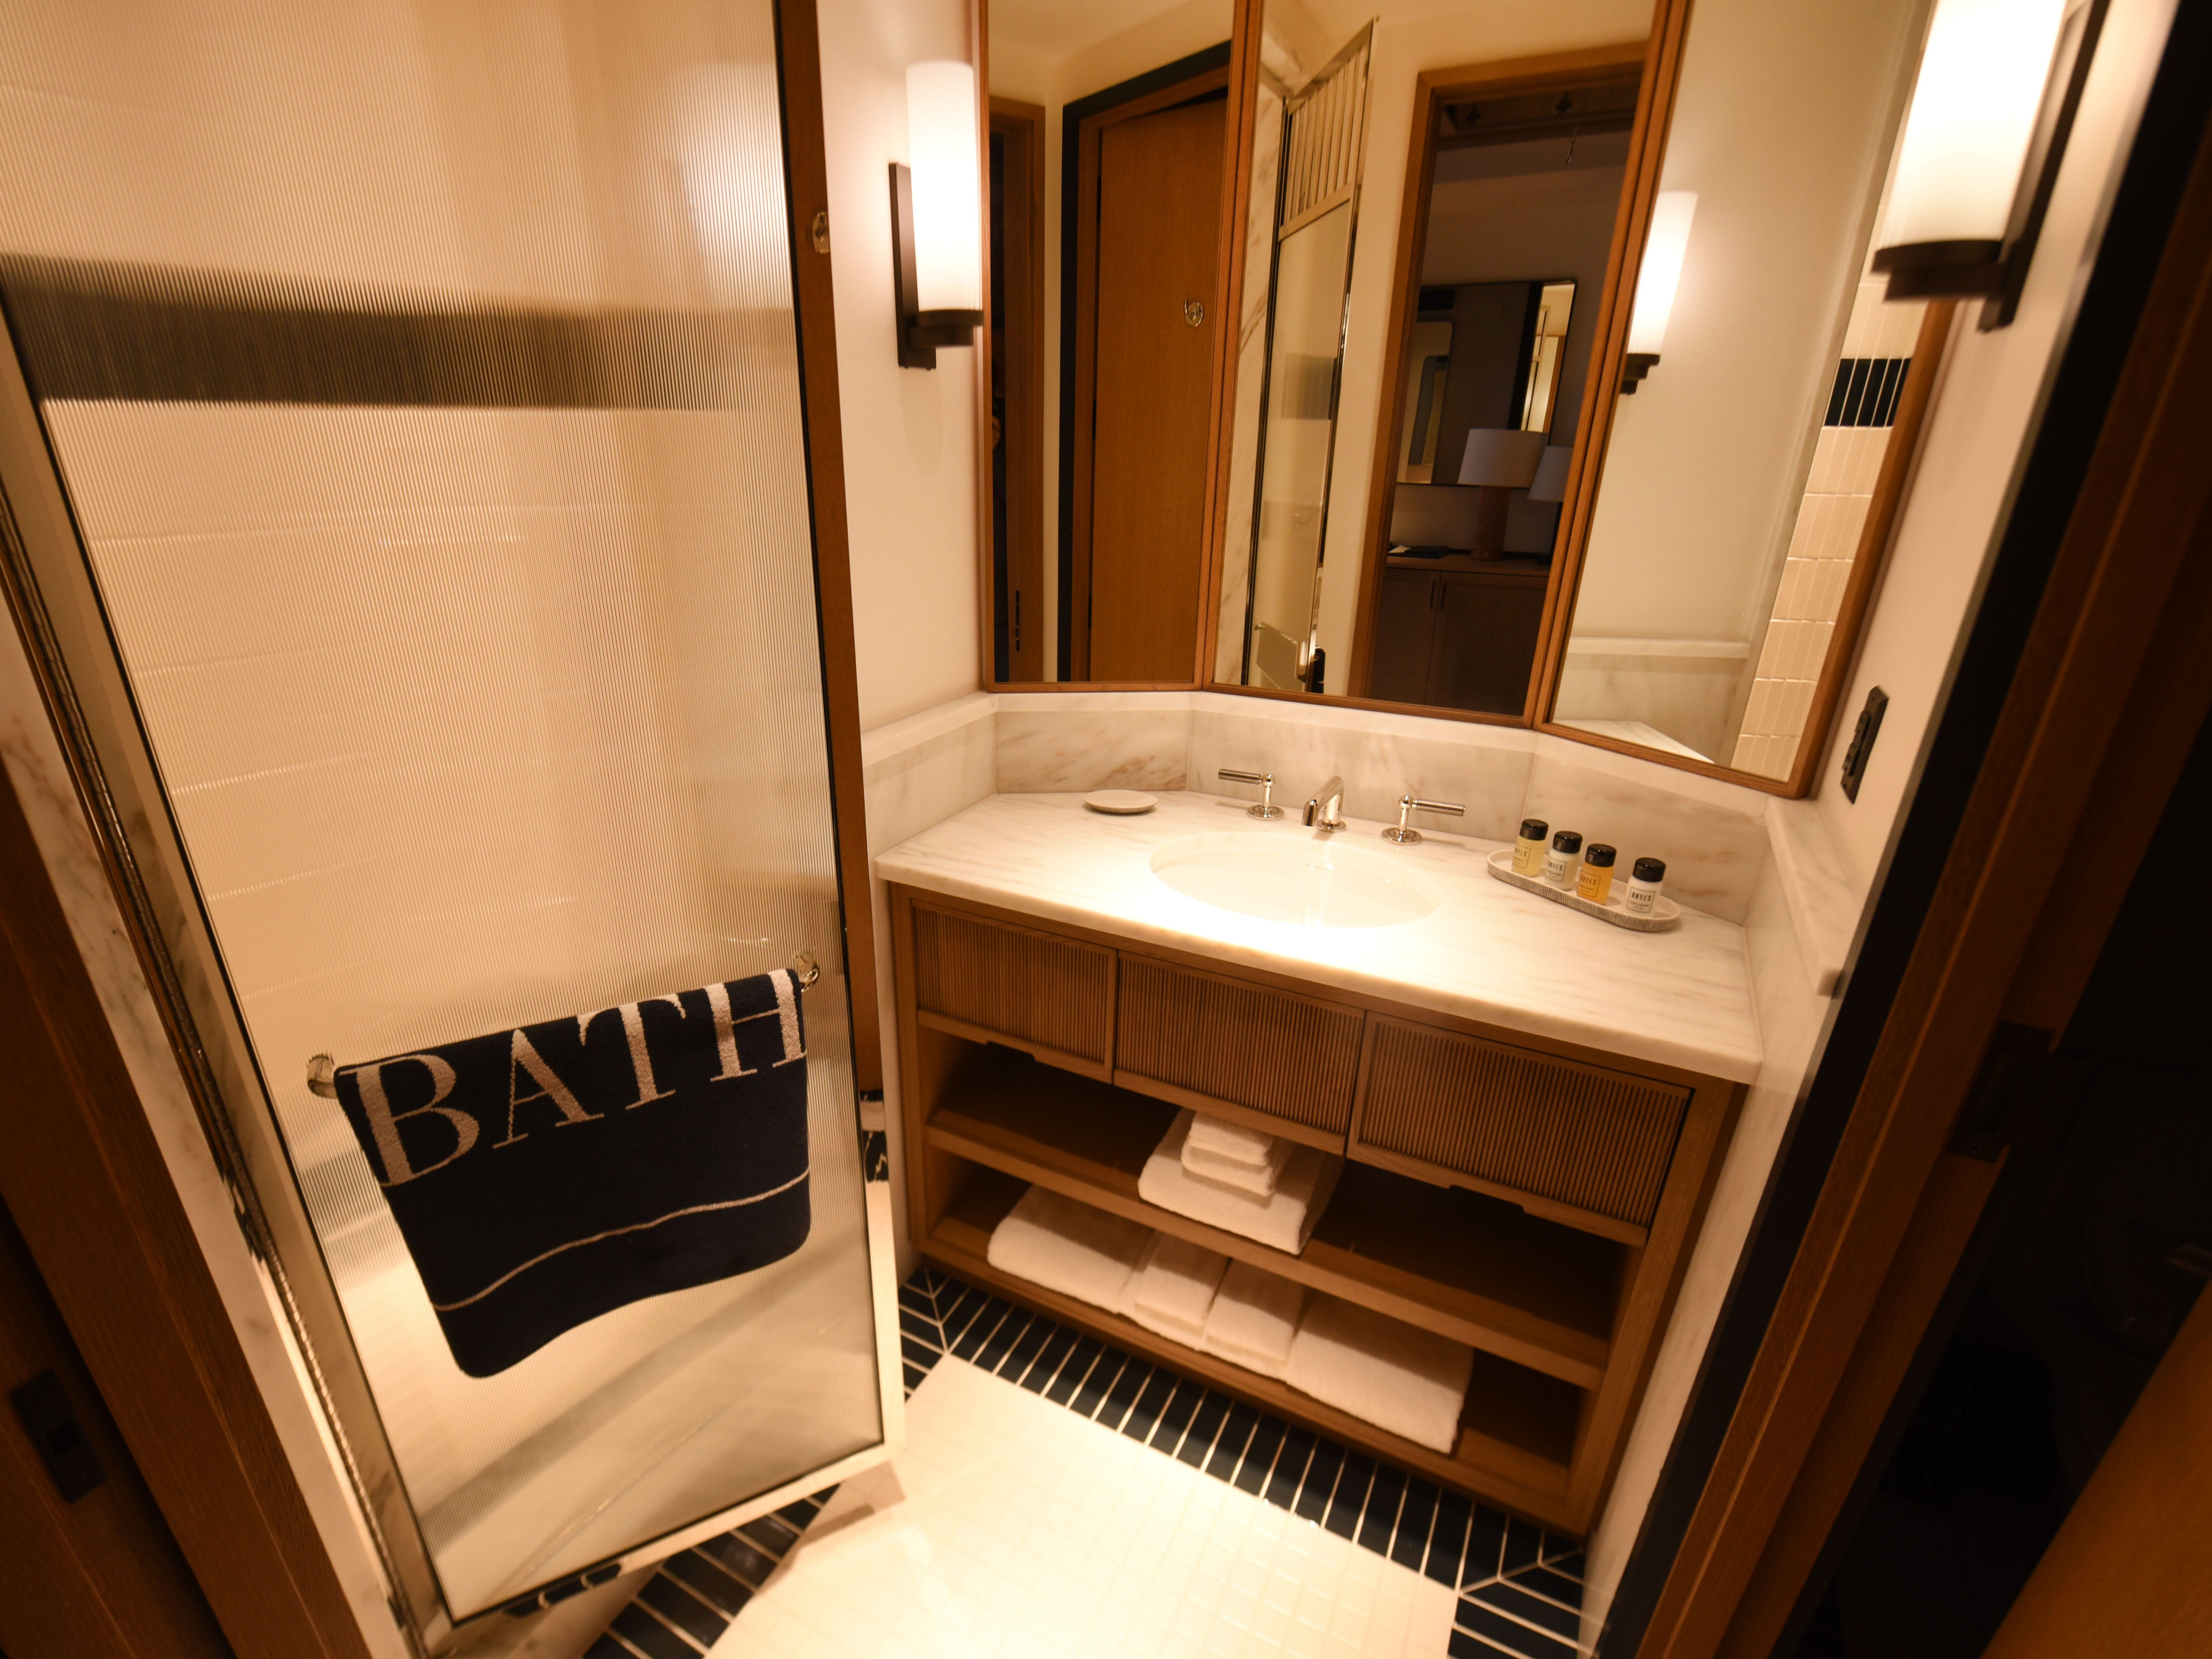 The custom vanity and shower inside a guest room.